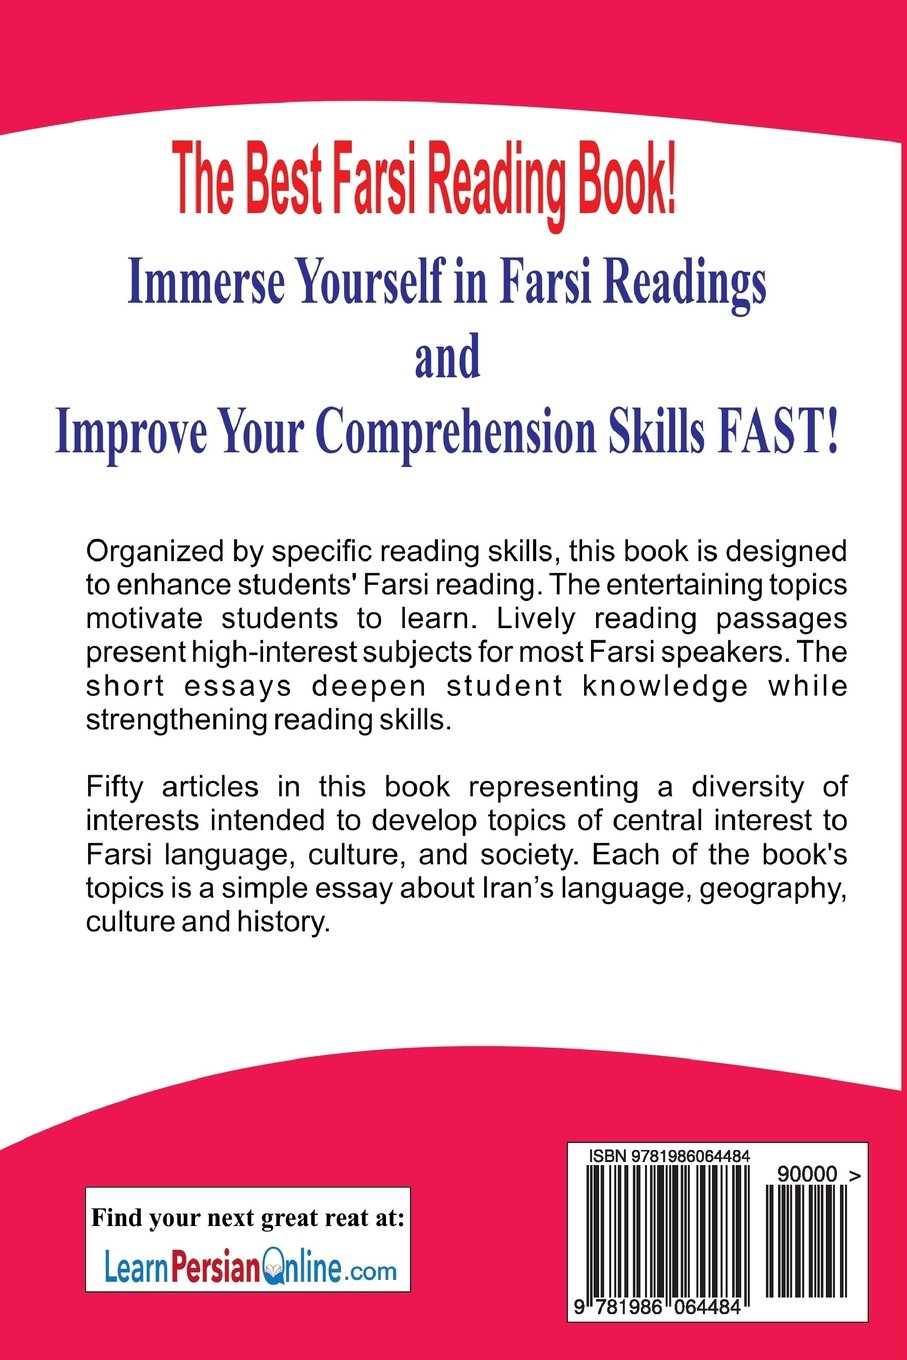 Online Assignment Work Farsi Reading  Improve Your Reading Skill And Discover The Art Culture  And History Of Iran For Intermediate And Advanced Farsi Learners Persian   Thesis For Compare Contrast Essay also Thesis Essay Examples Farsi Reading  Improve Your Reading Skill And Discover The Art  Professional College Writing Services